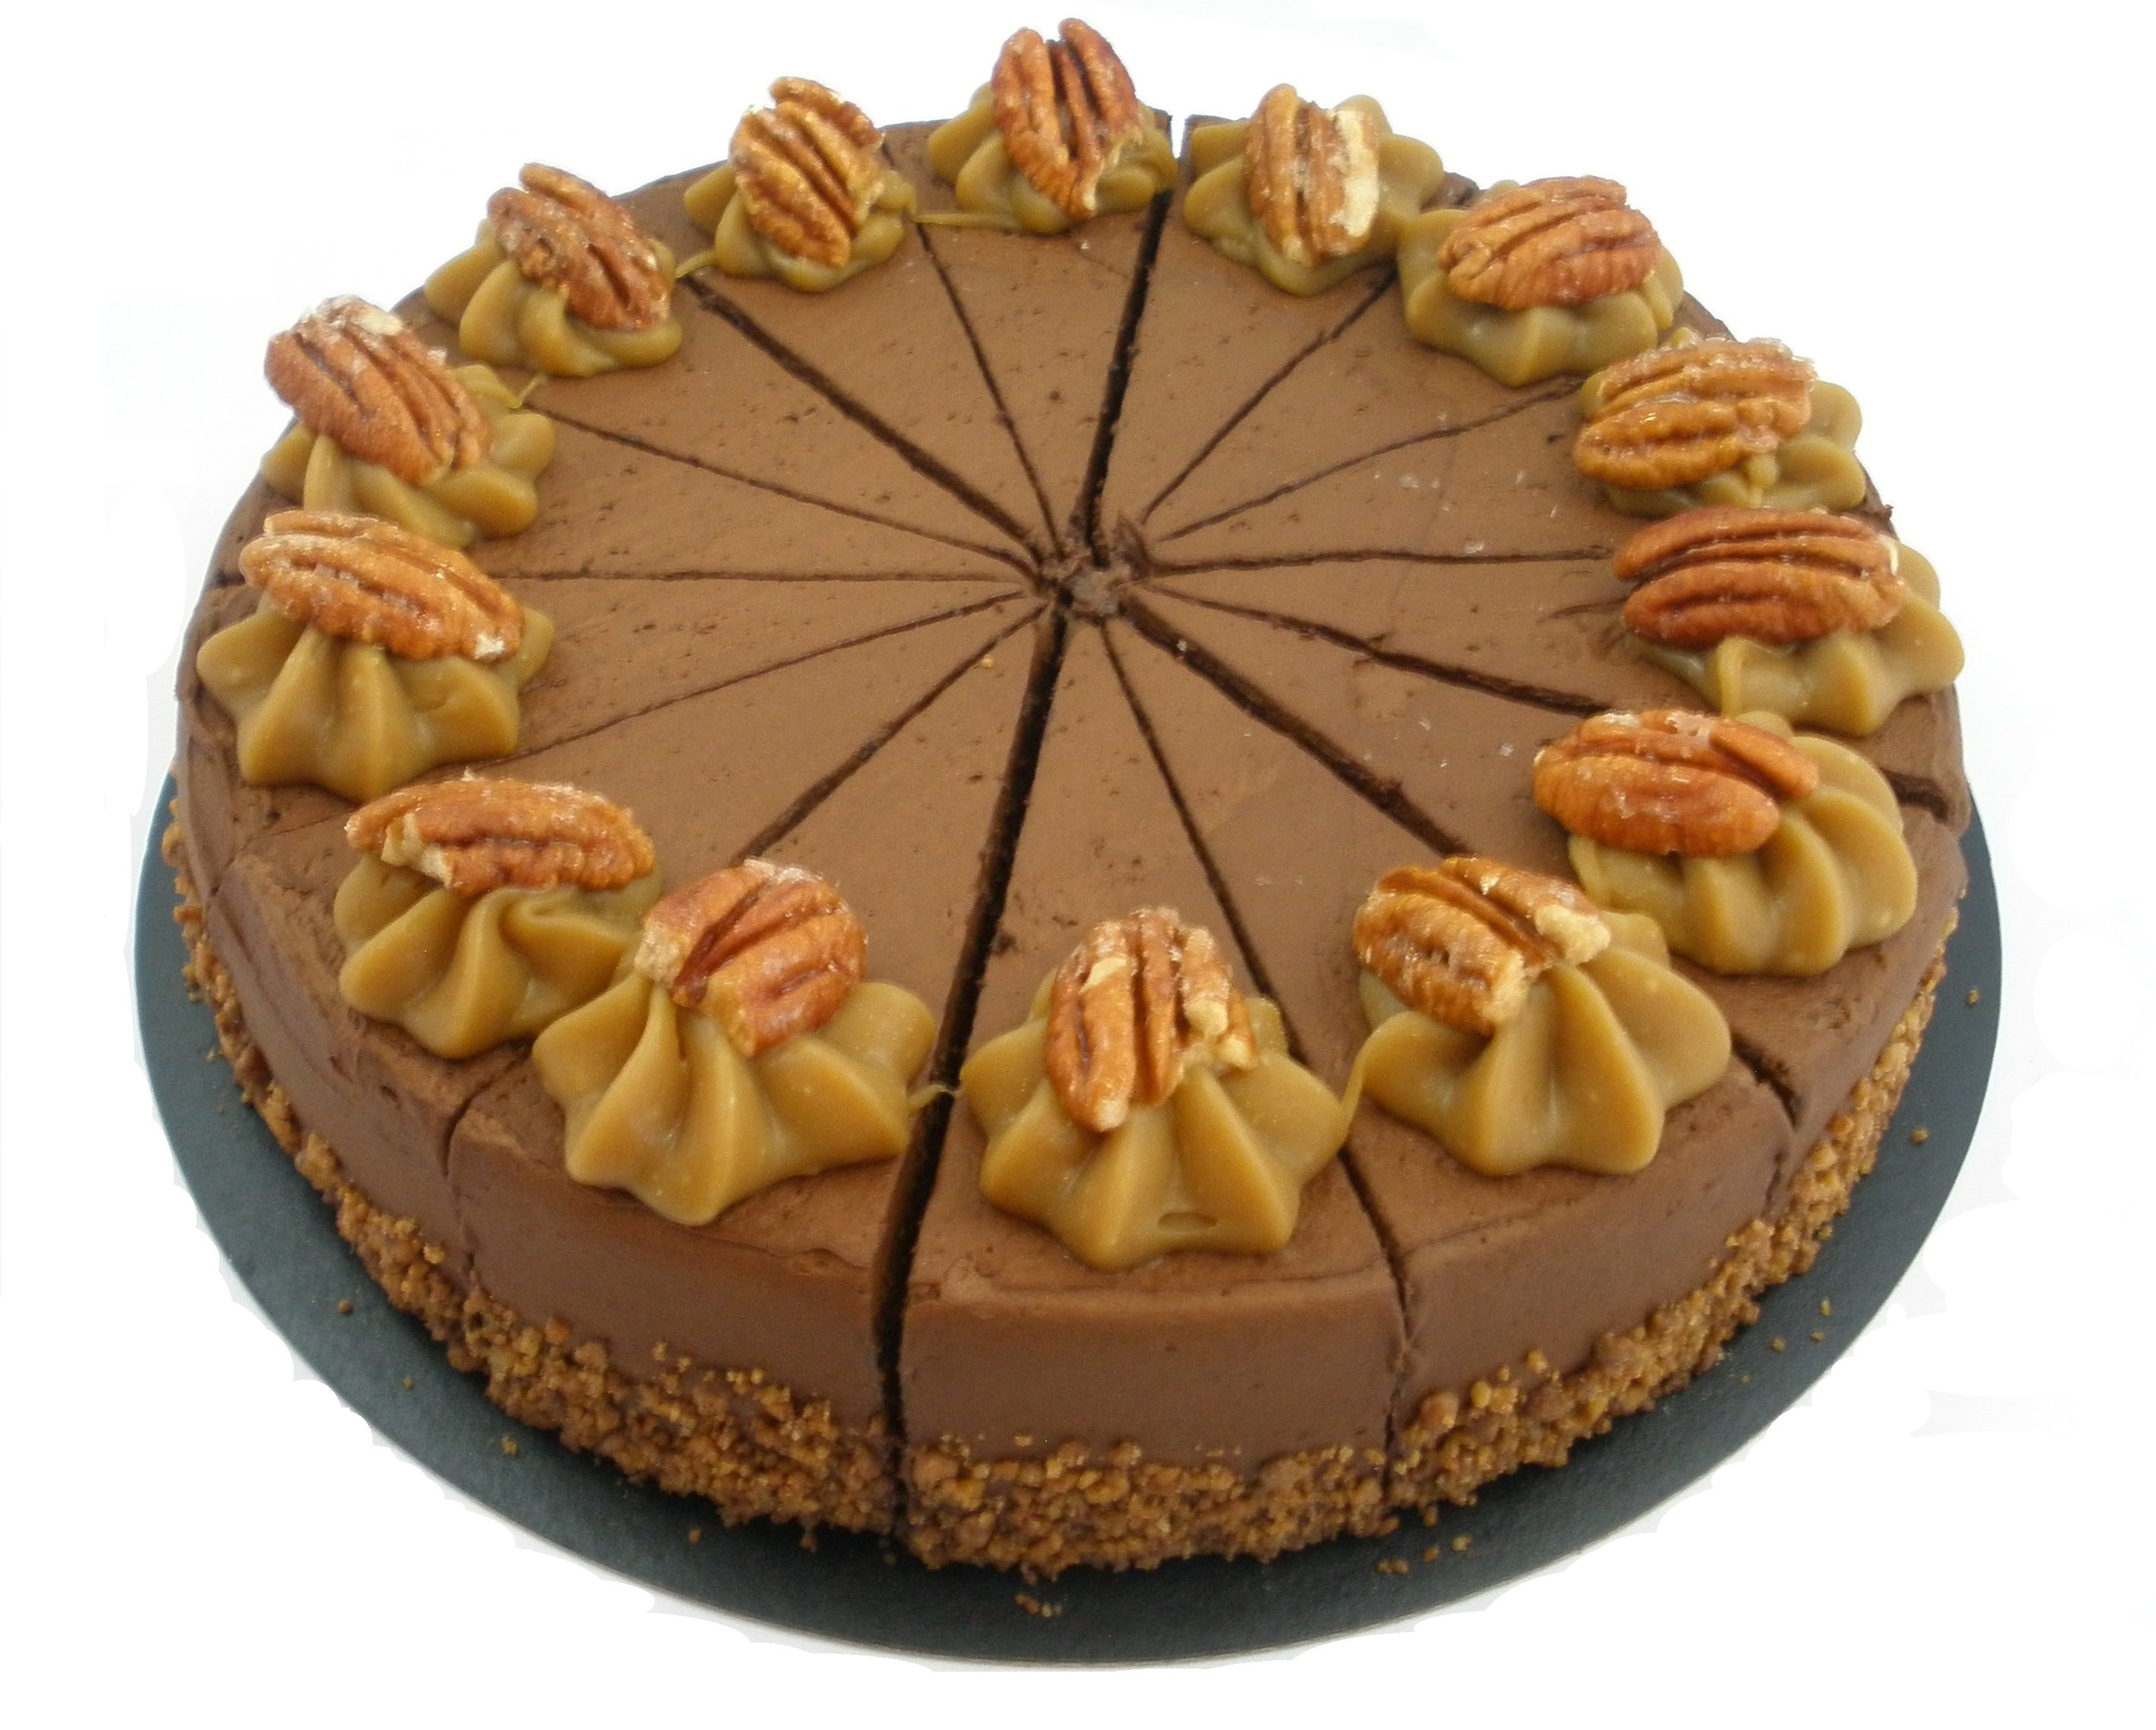 https://0901.nccdn.net/4_2/000/000/056/7dc/chocolate-pecan-praline-buffet-cake.jpg